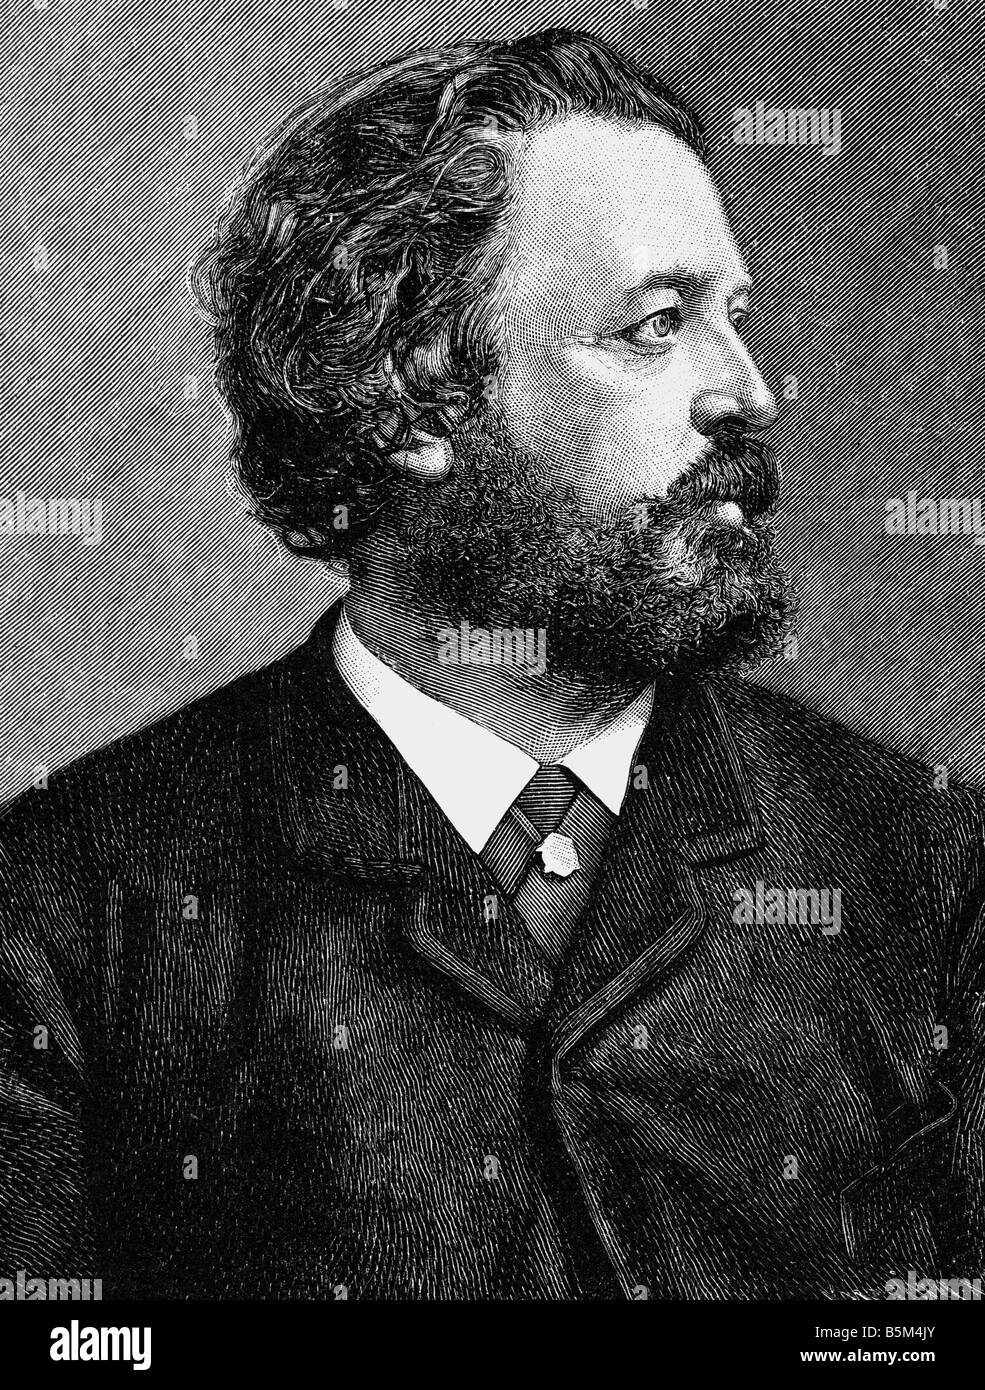 Heyse, Paul, 15.3.1830 - 2.4.1914, German author/writer, portrait, wood engraving, Additional-Rights-Clearances - Stock Image